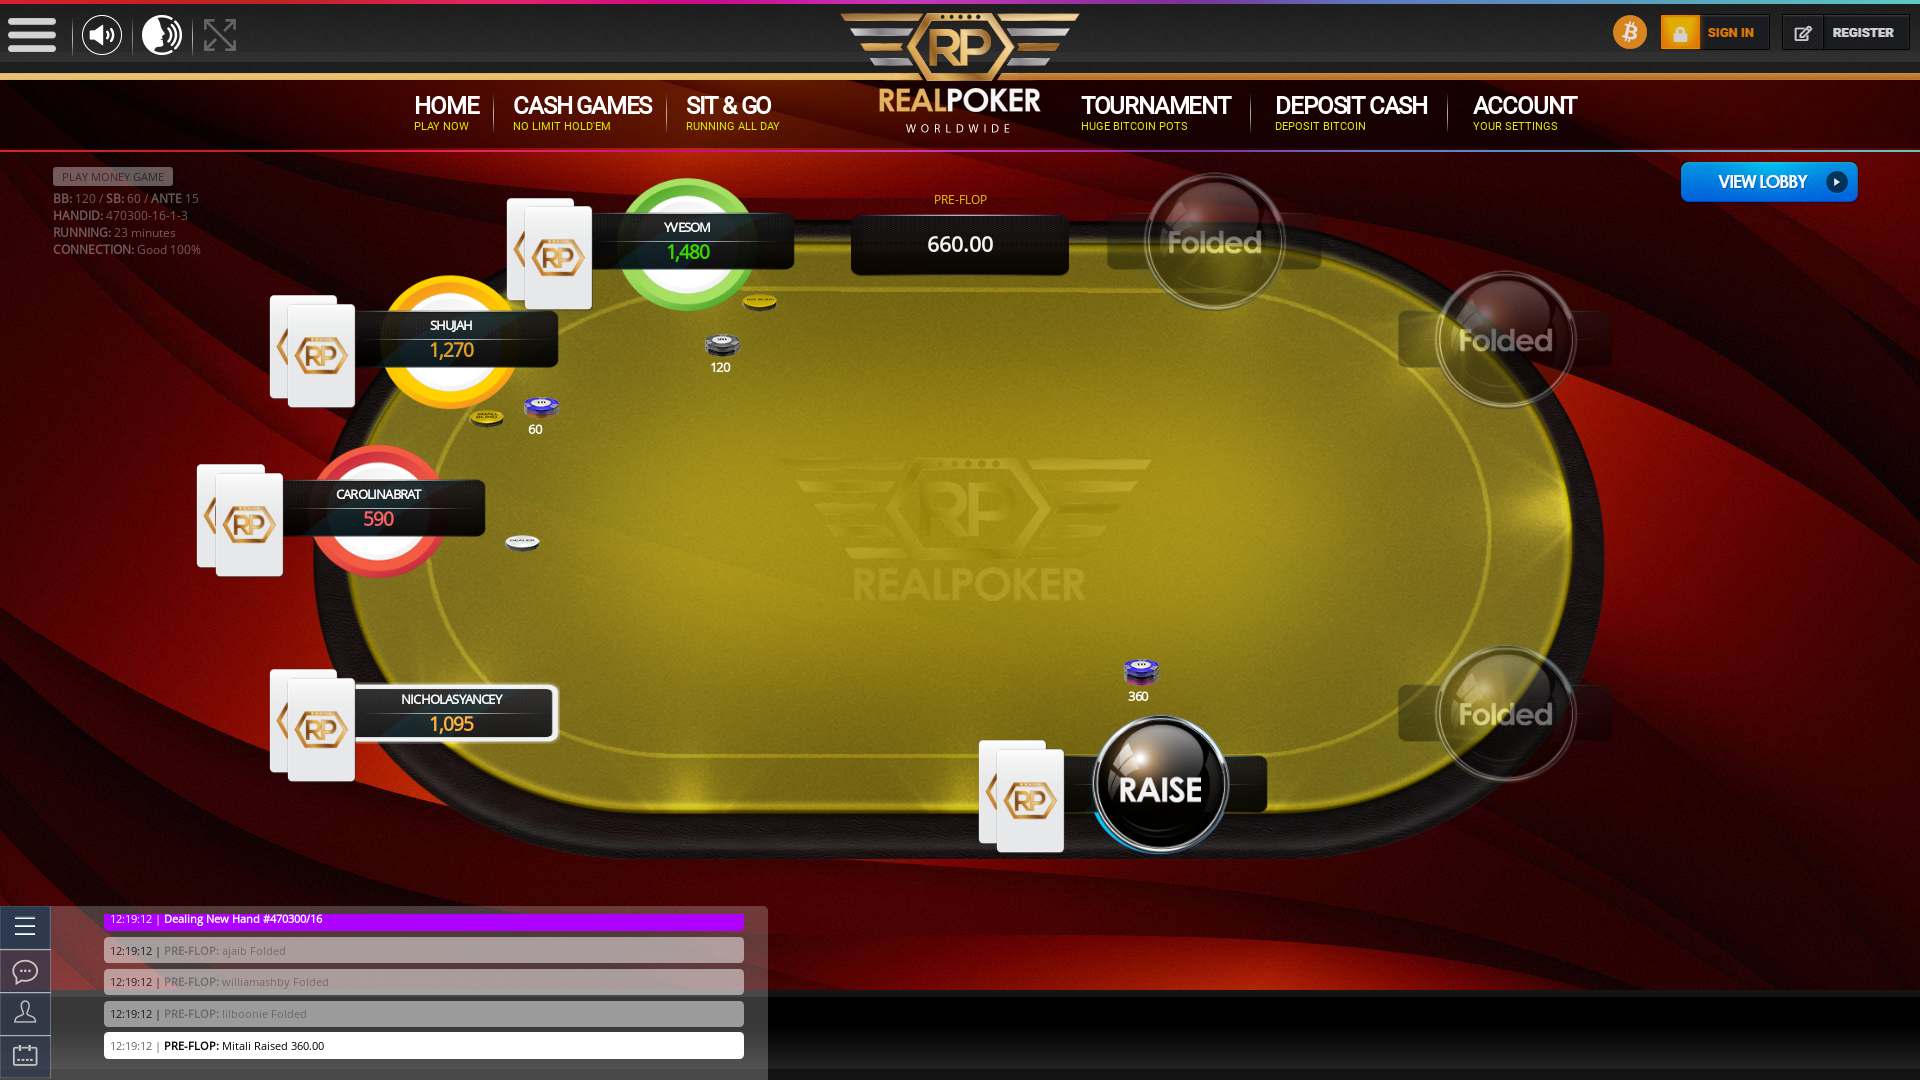 Colombia BTC Poker 10 Player